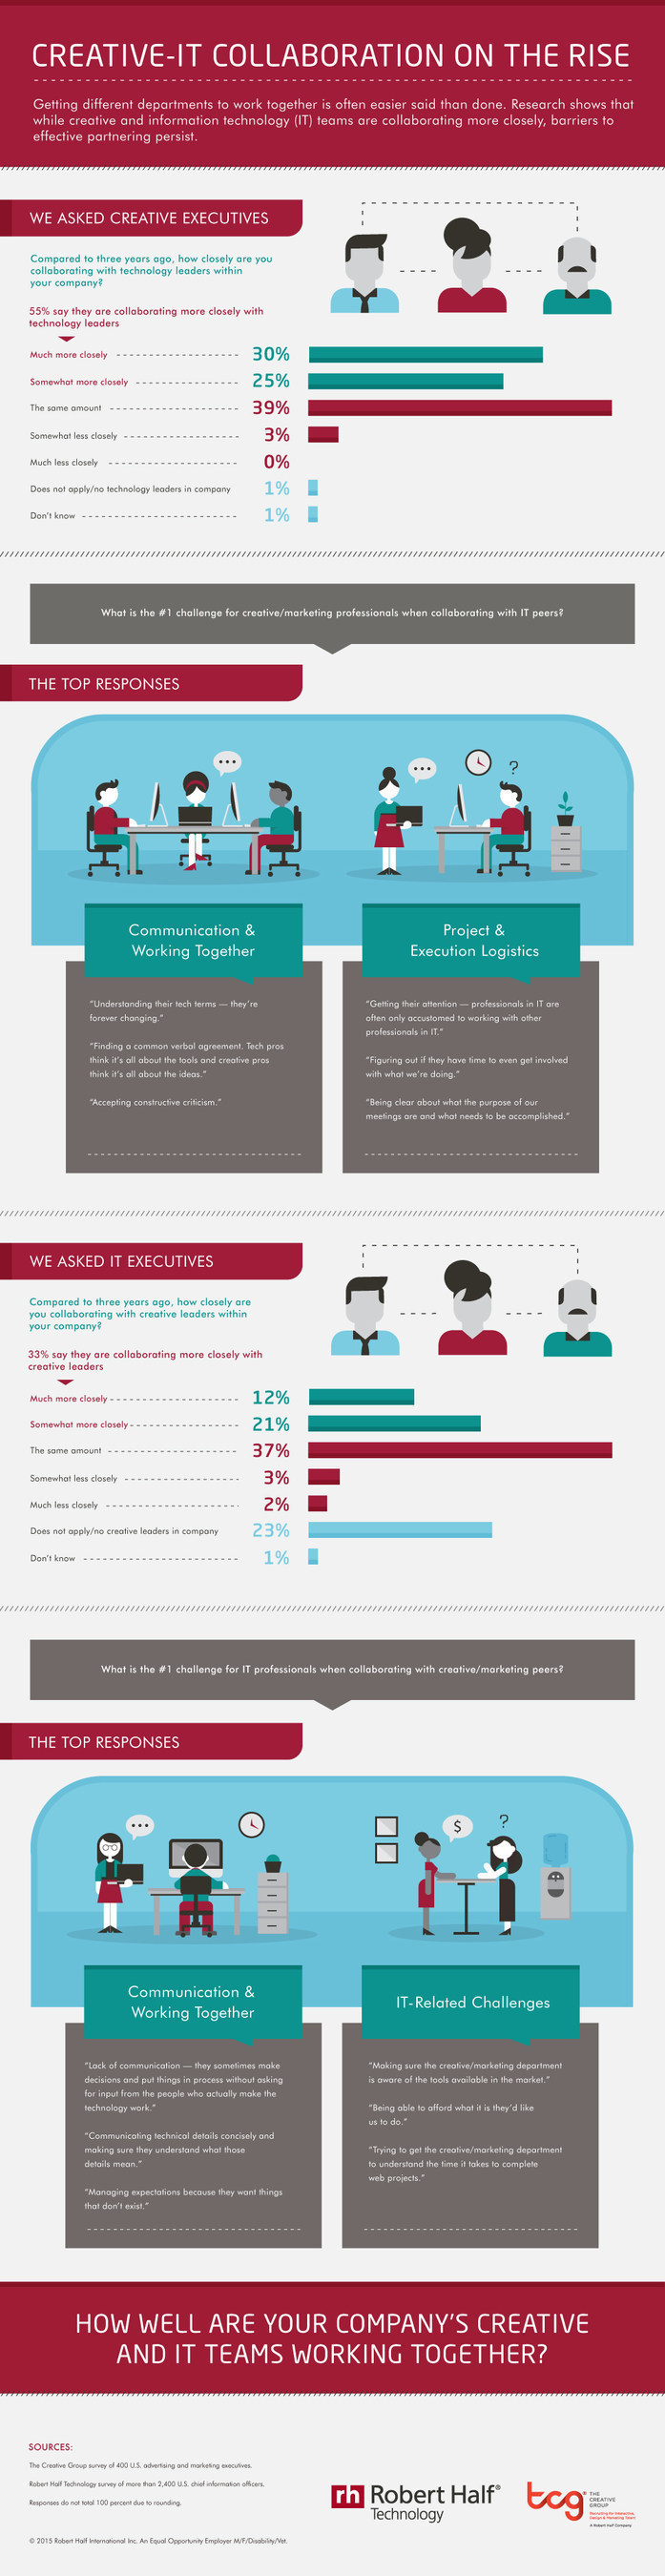 Research from The Creative Group and Robert Half Technology shows creative and IT collaboration is on the rise.